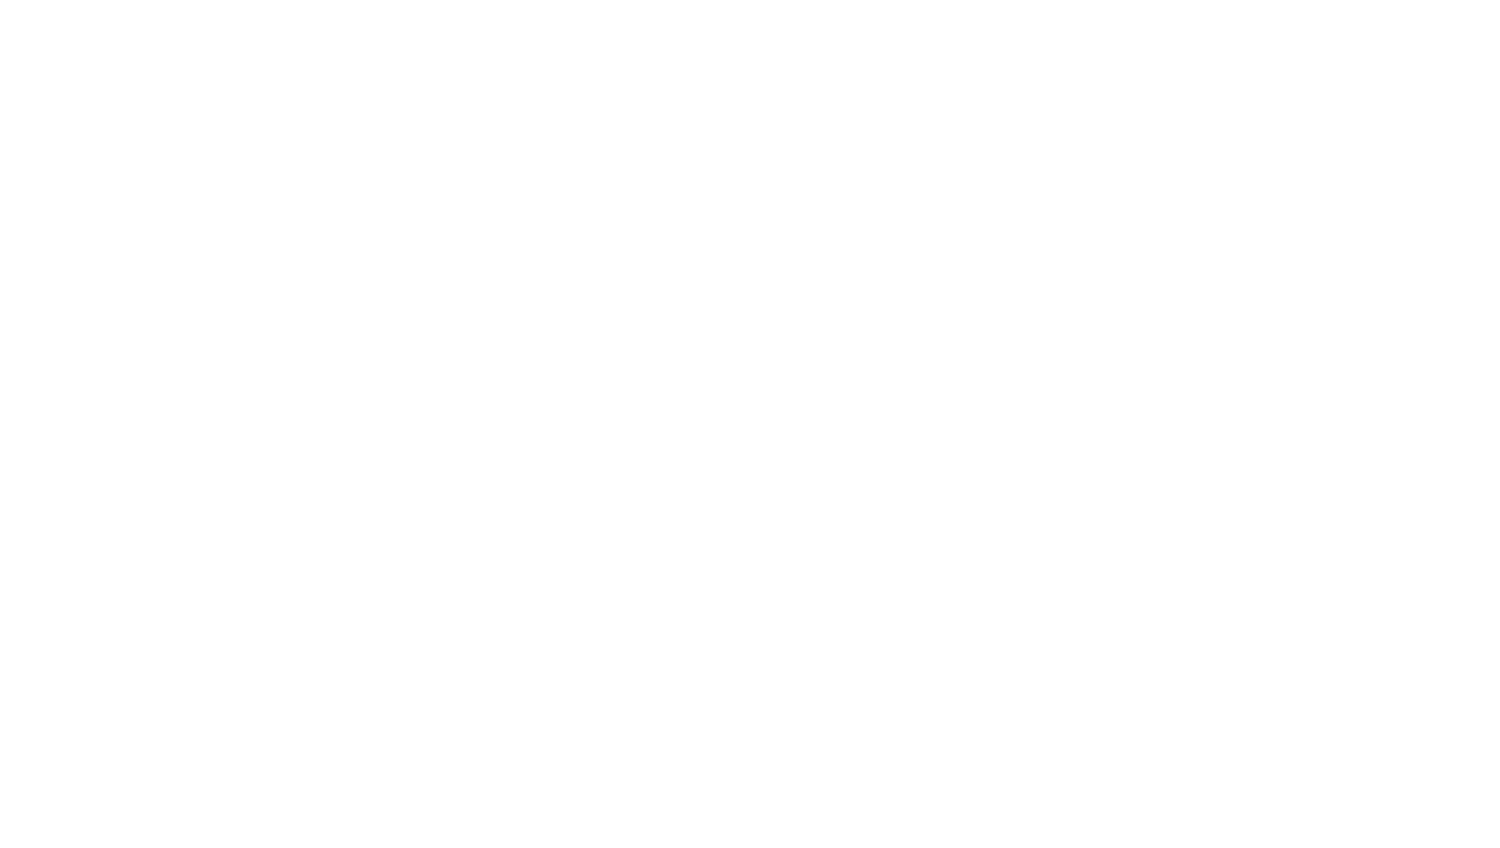 Rainbow Valley Wedding Barn